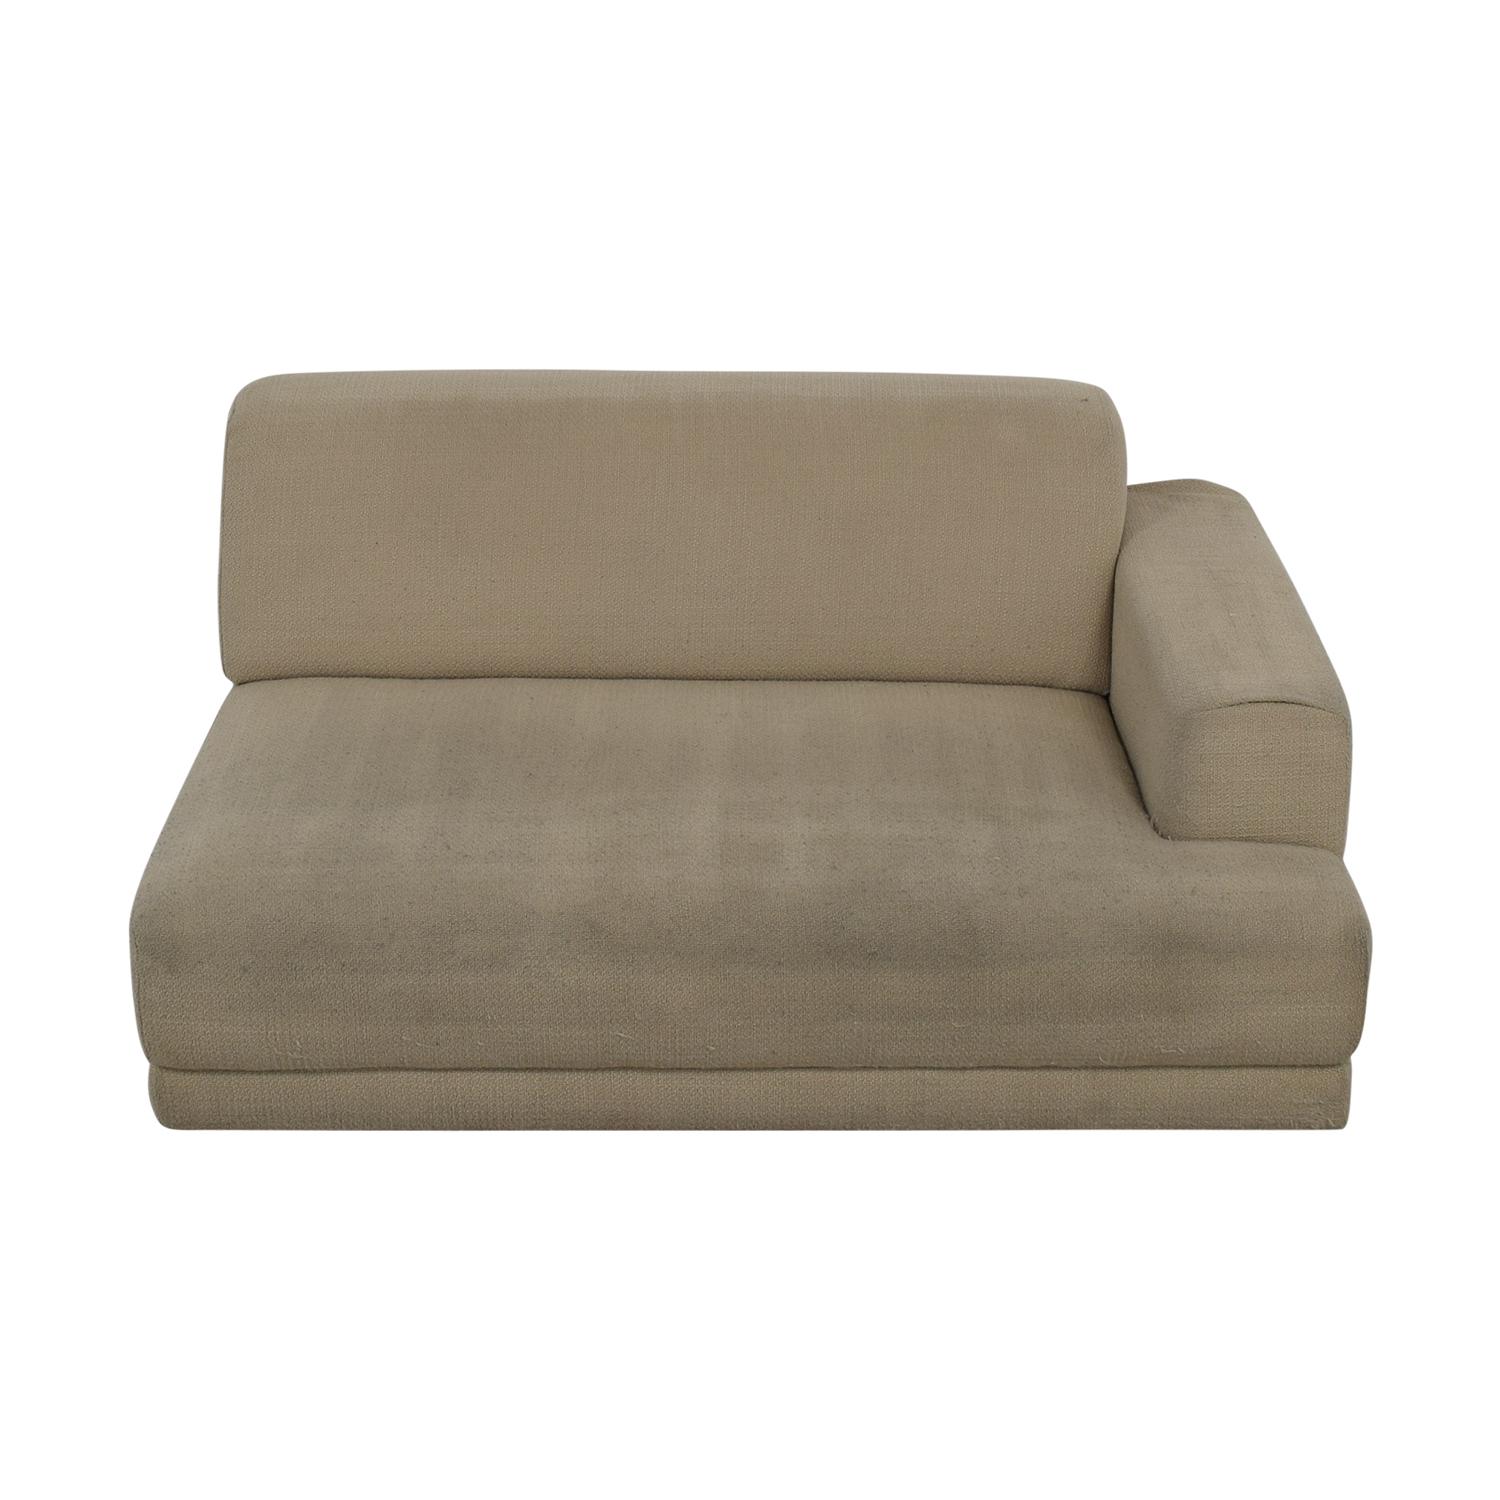 buy Crate & Barrel Beige One Armed Chaise Sofa Crate & Barrel